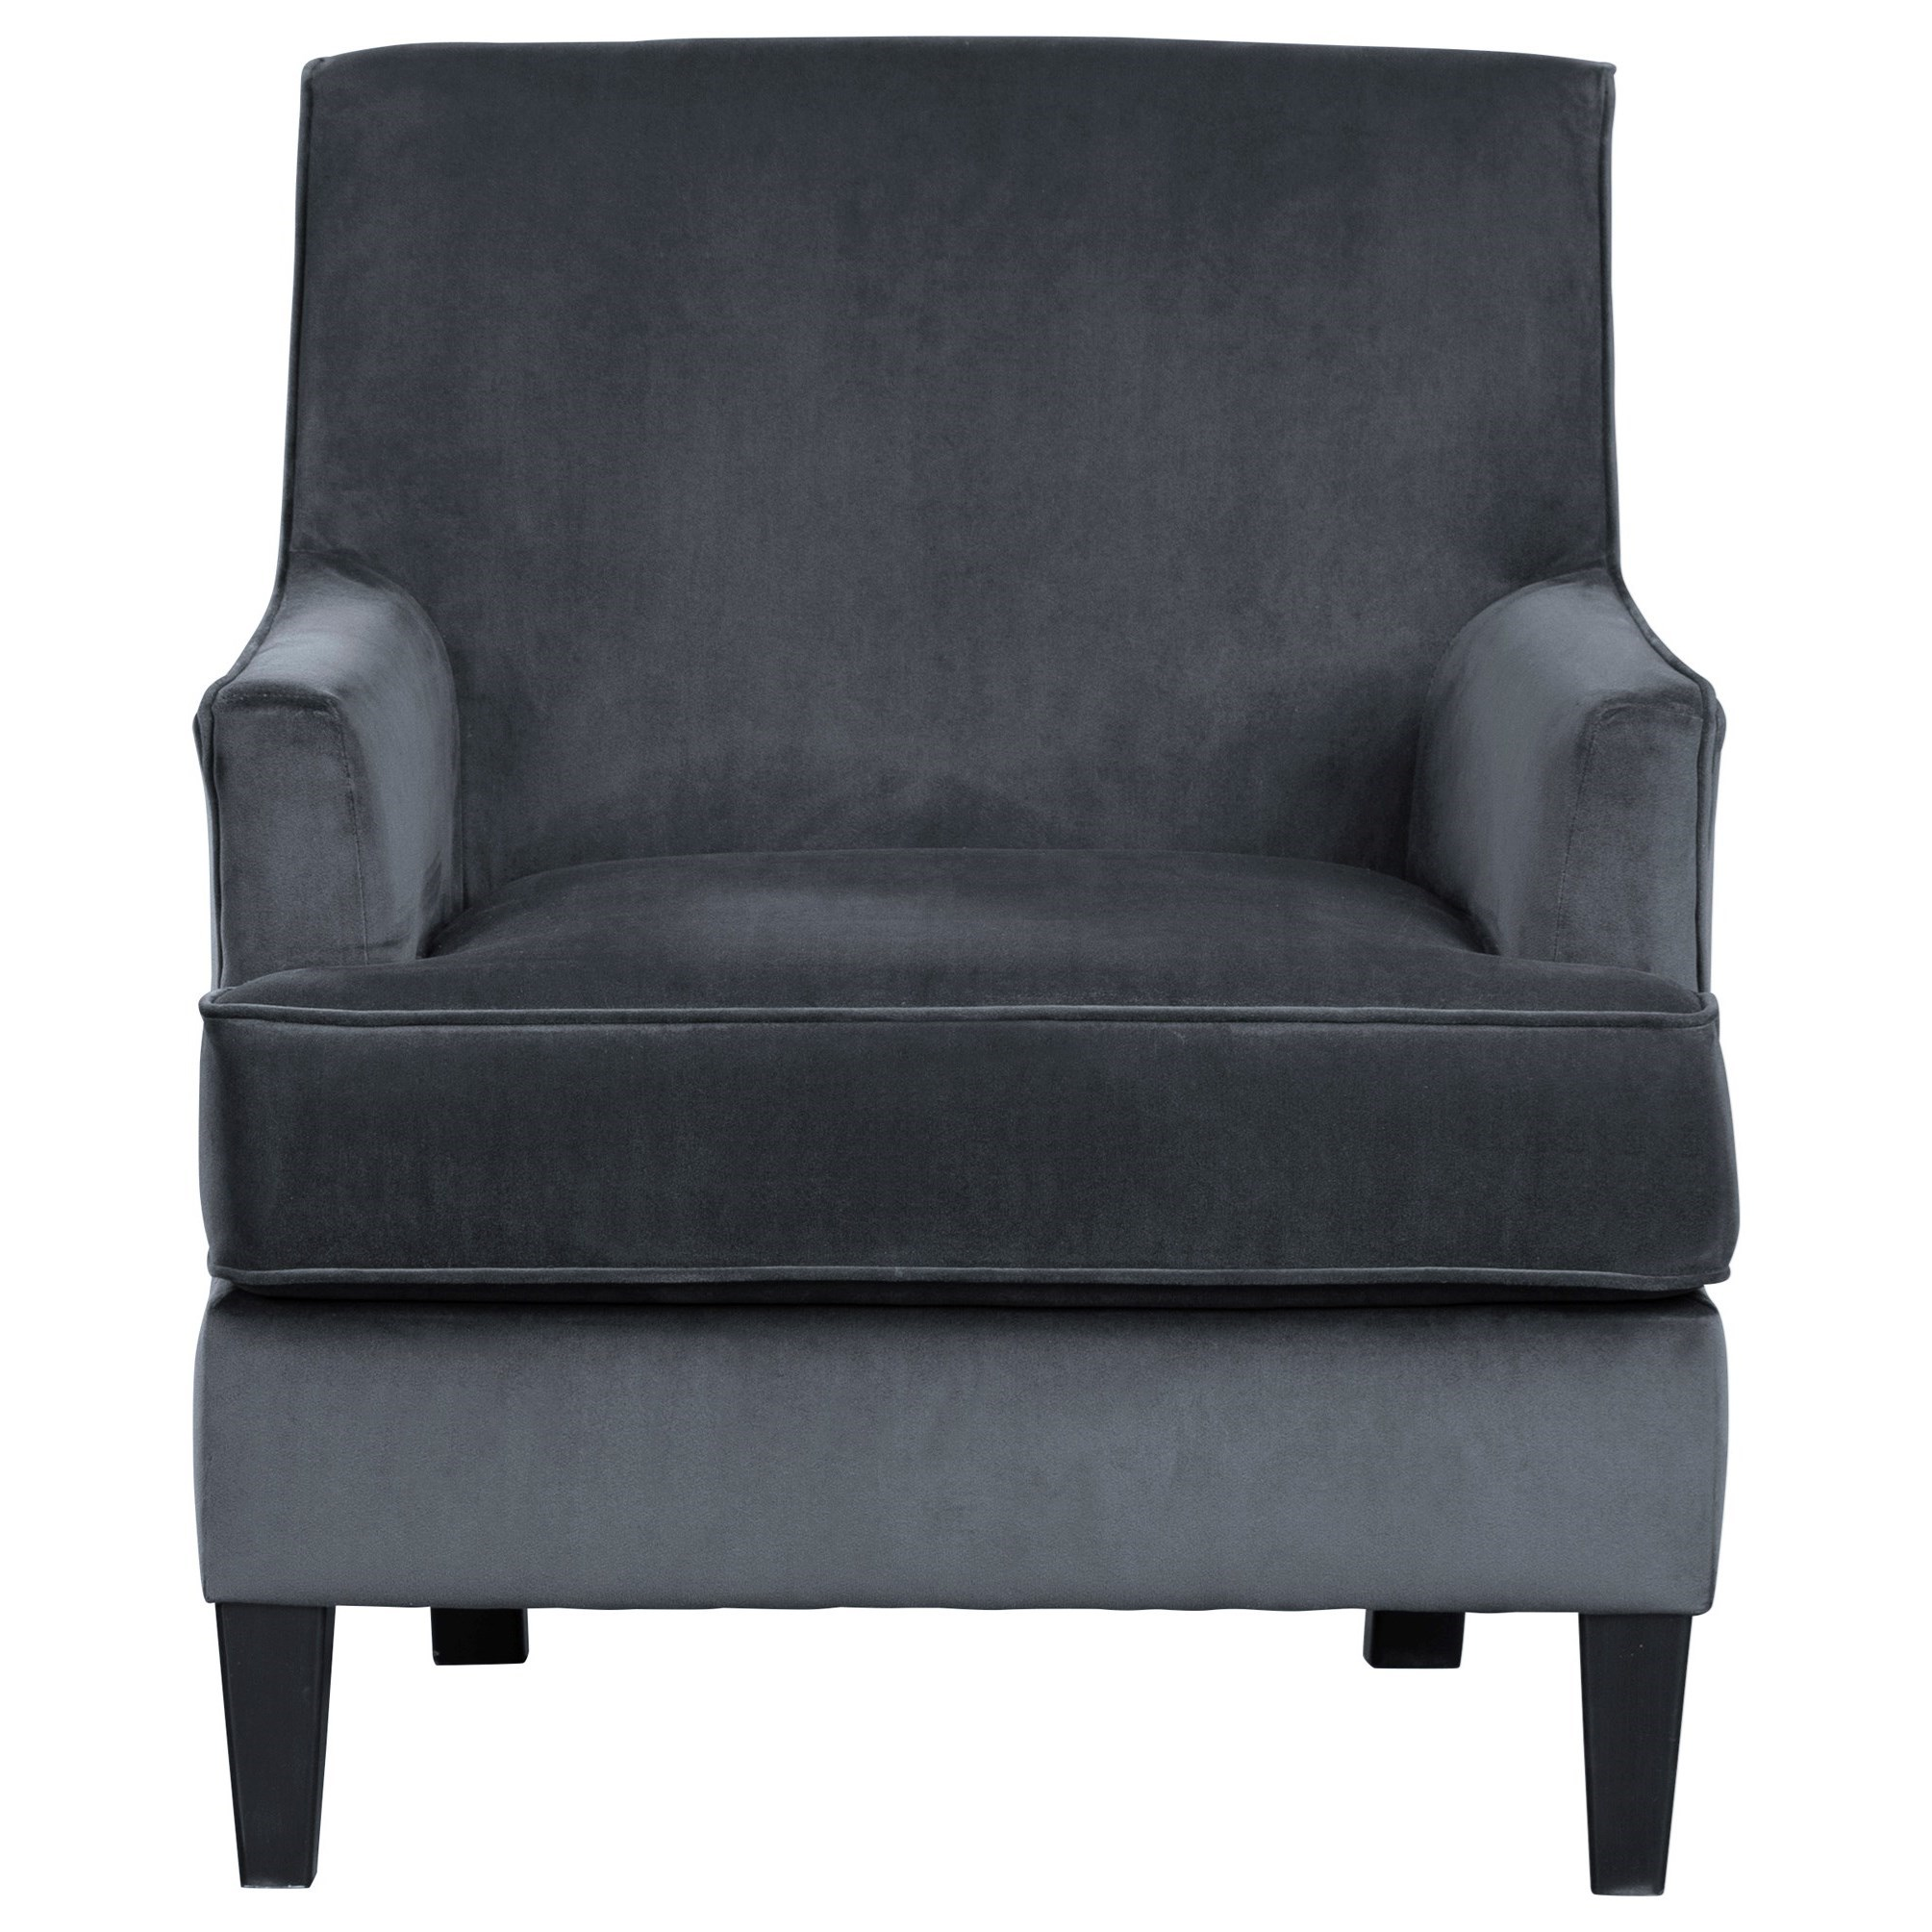 Kennewick Accent Chair by Signature Design by Ashley at Zak's Warehouse Clearance Center